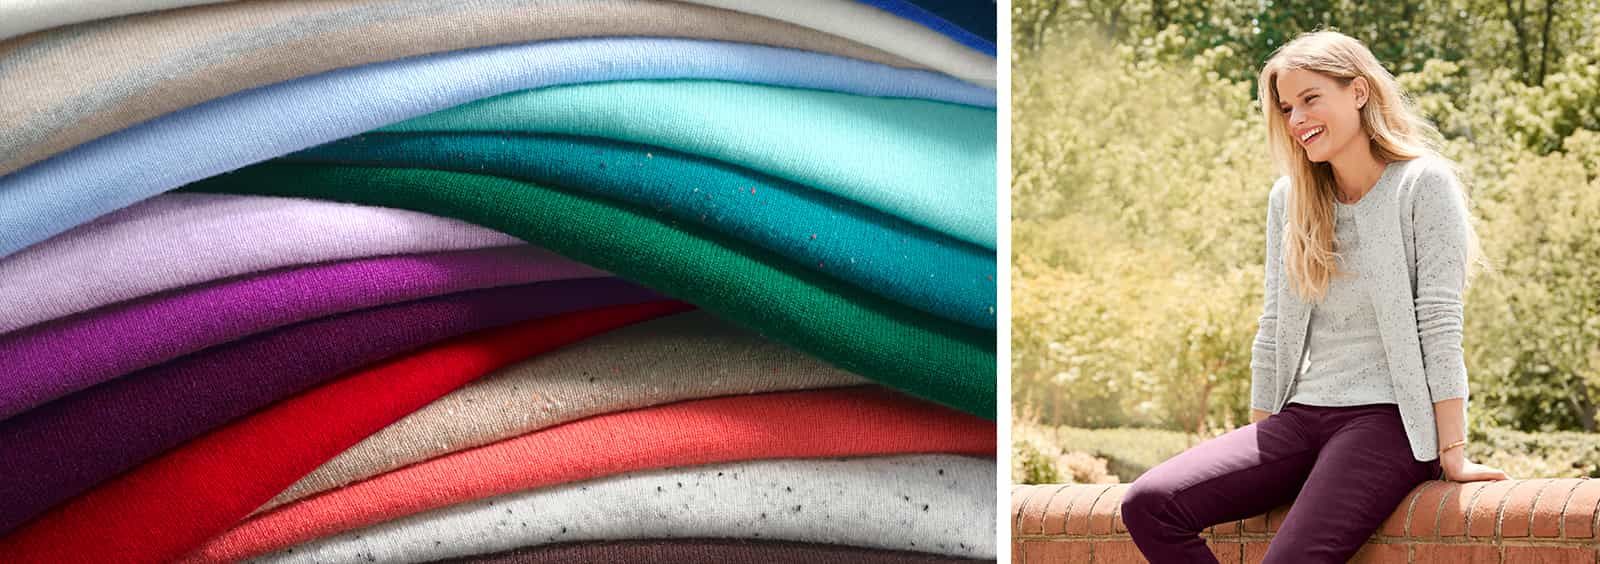 7 Things to Consider When Buying Cashmere